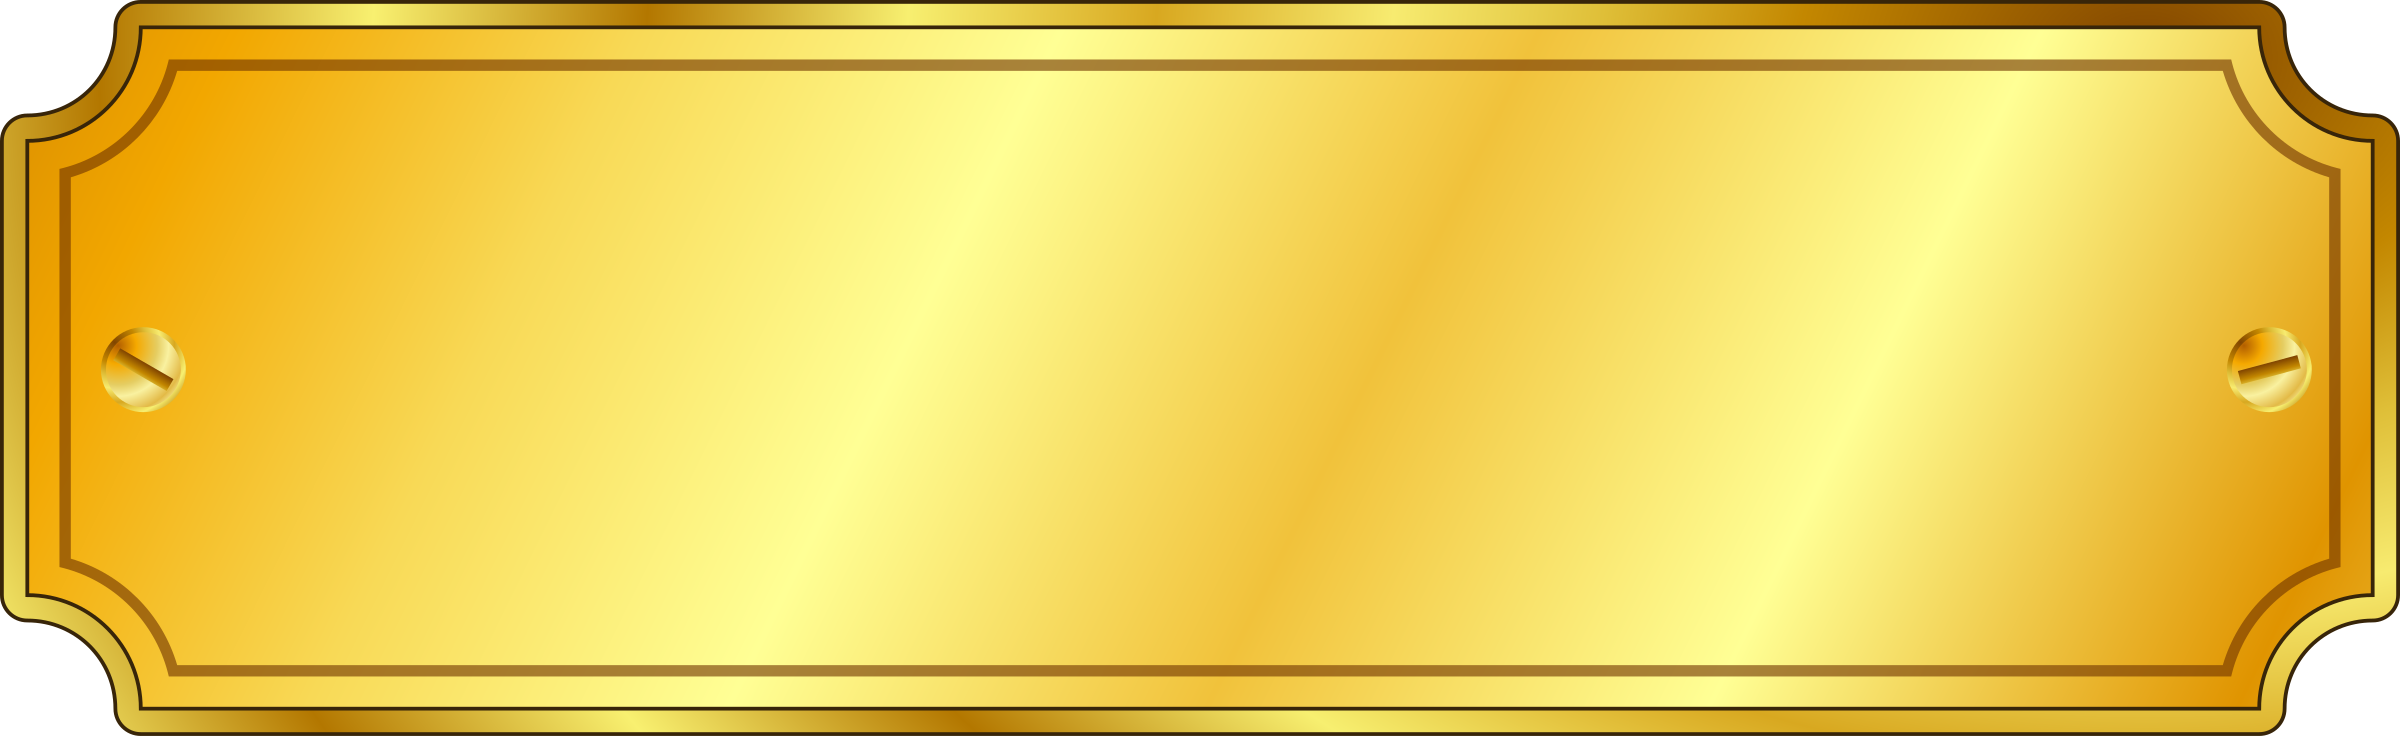 Gold Transparent Image PNG Image